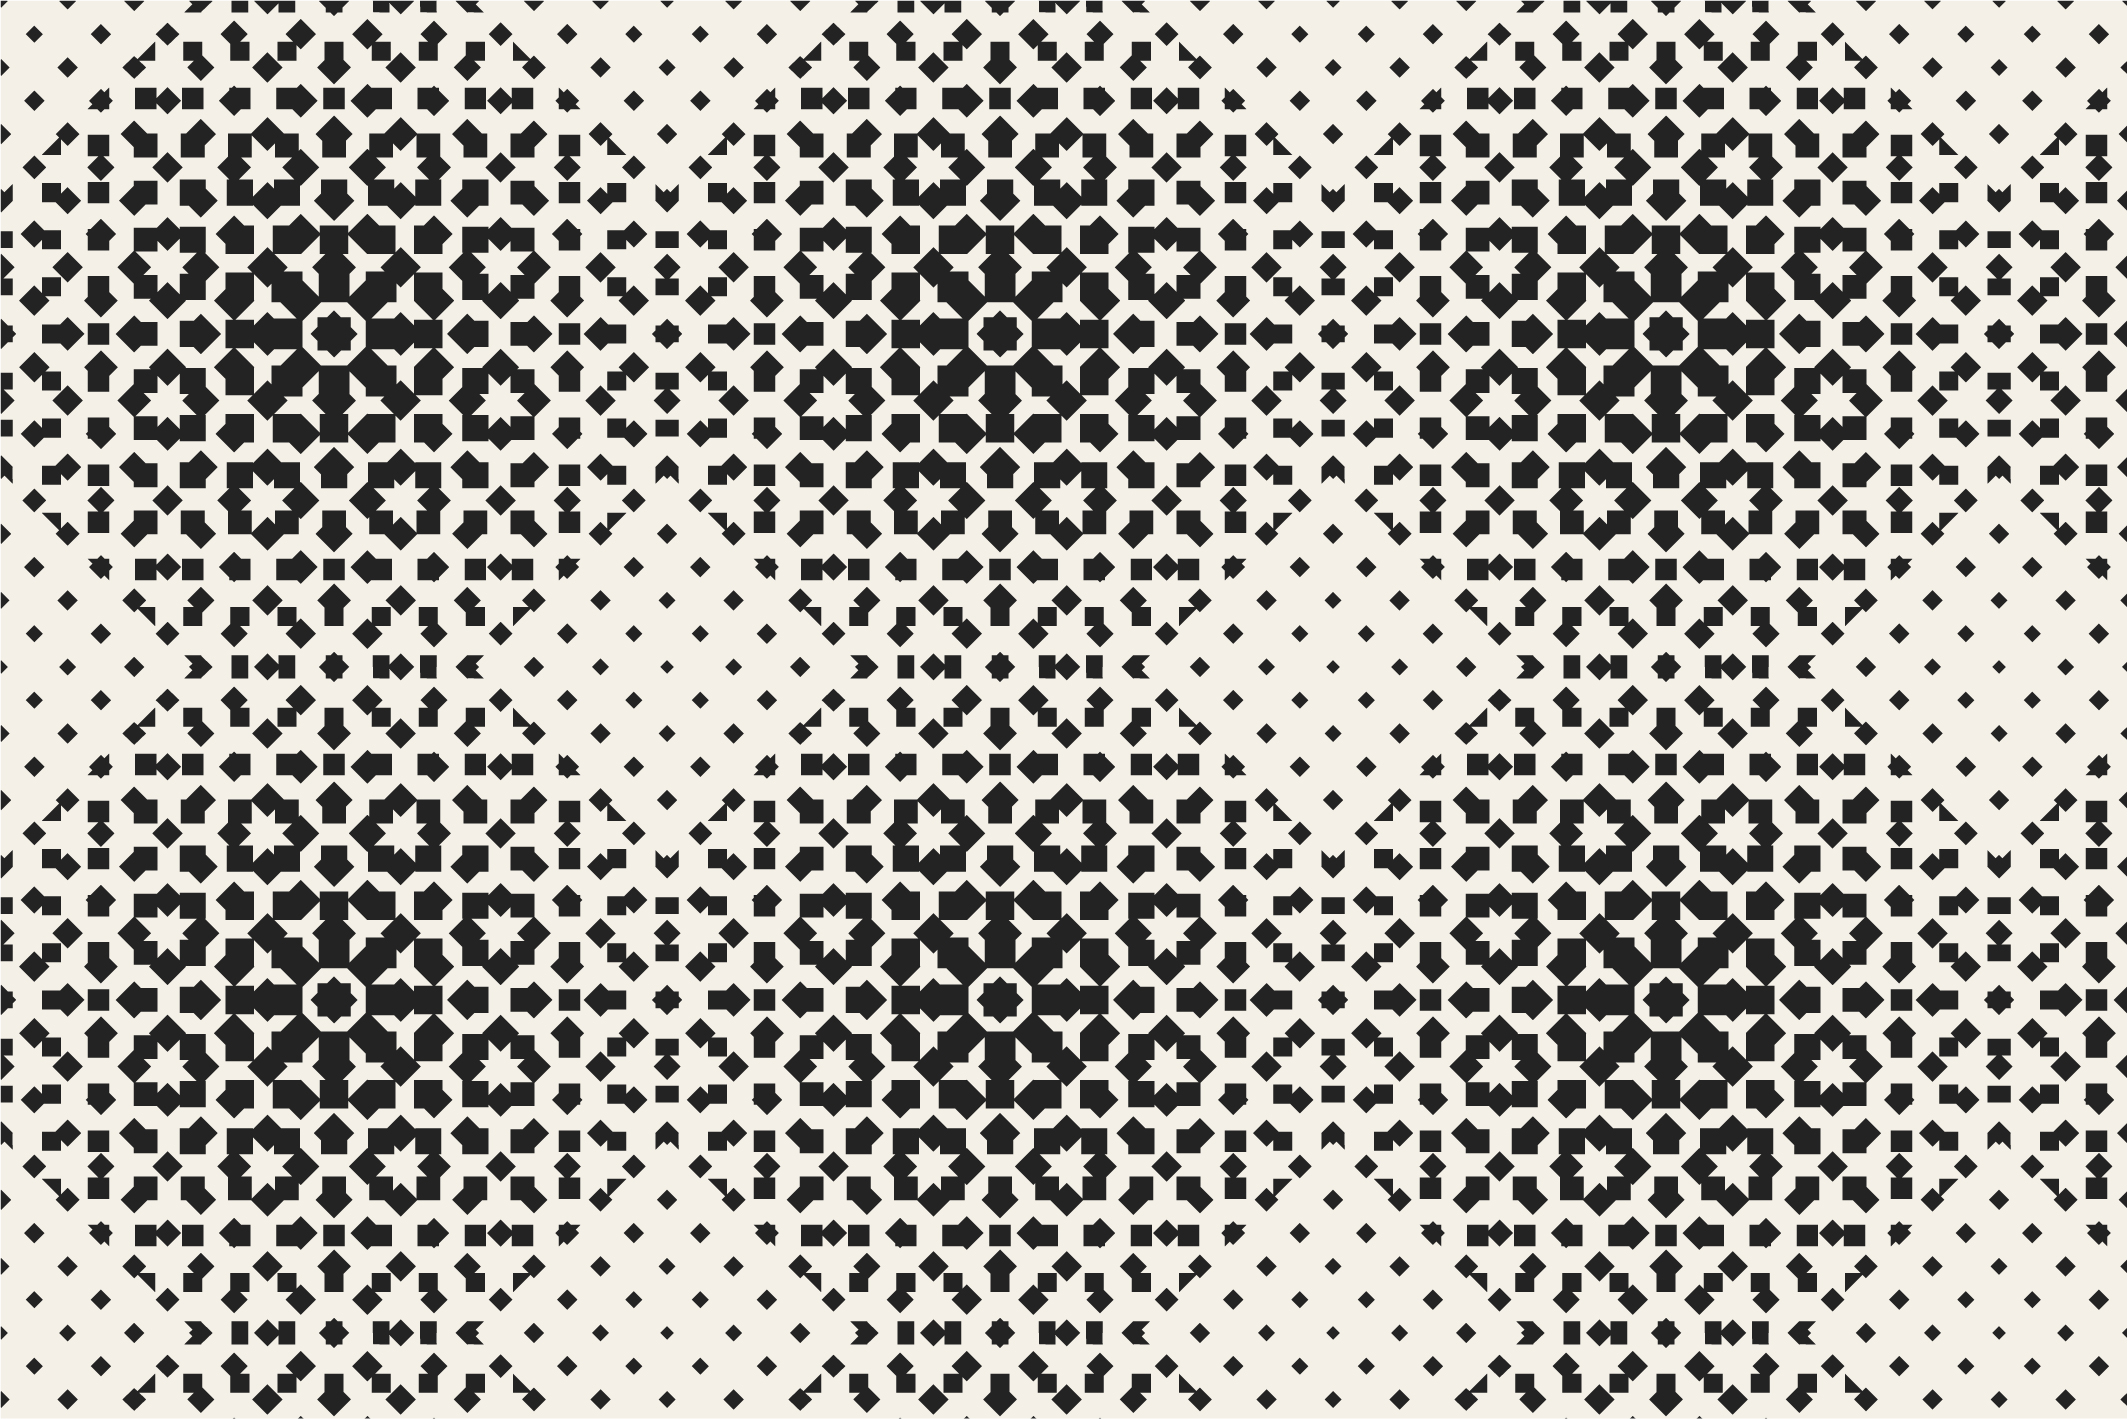 Halftone seamless patterns example image 5